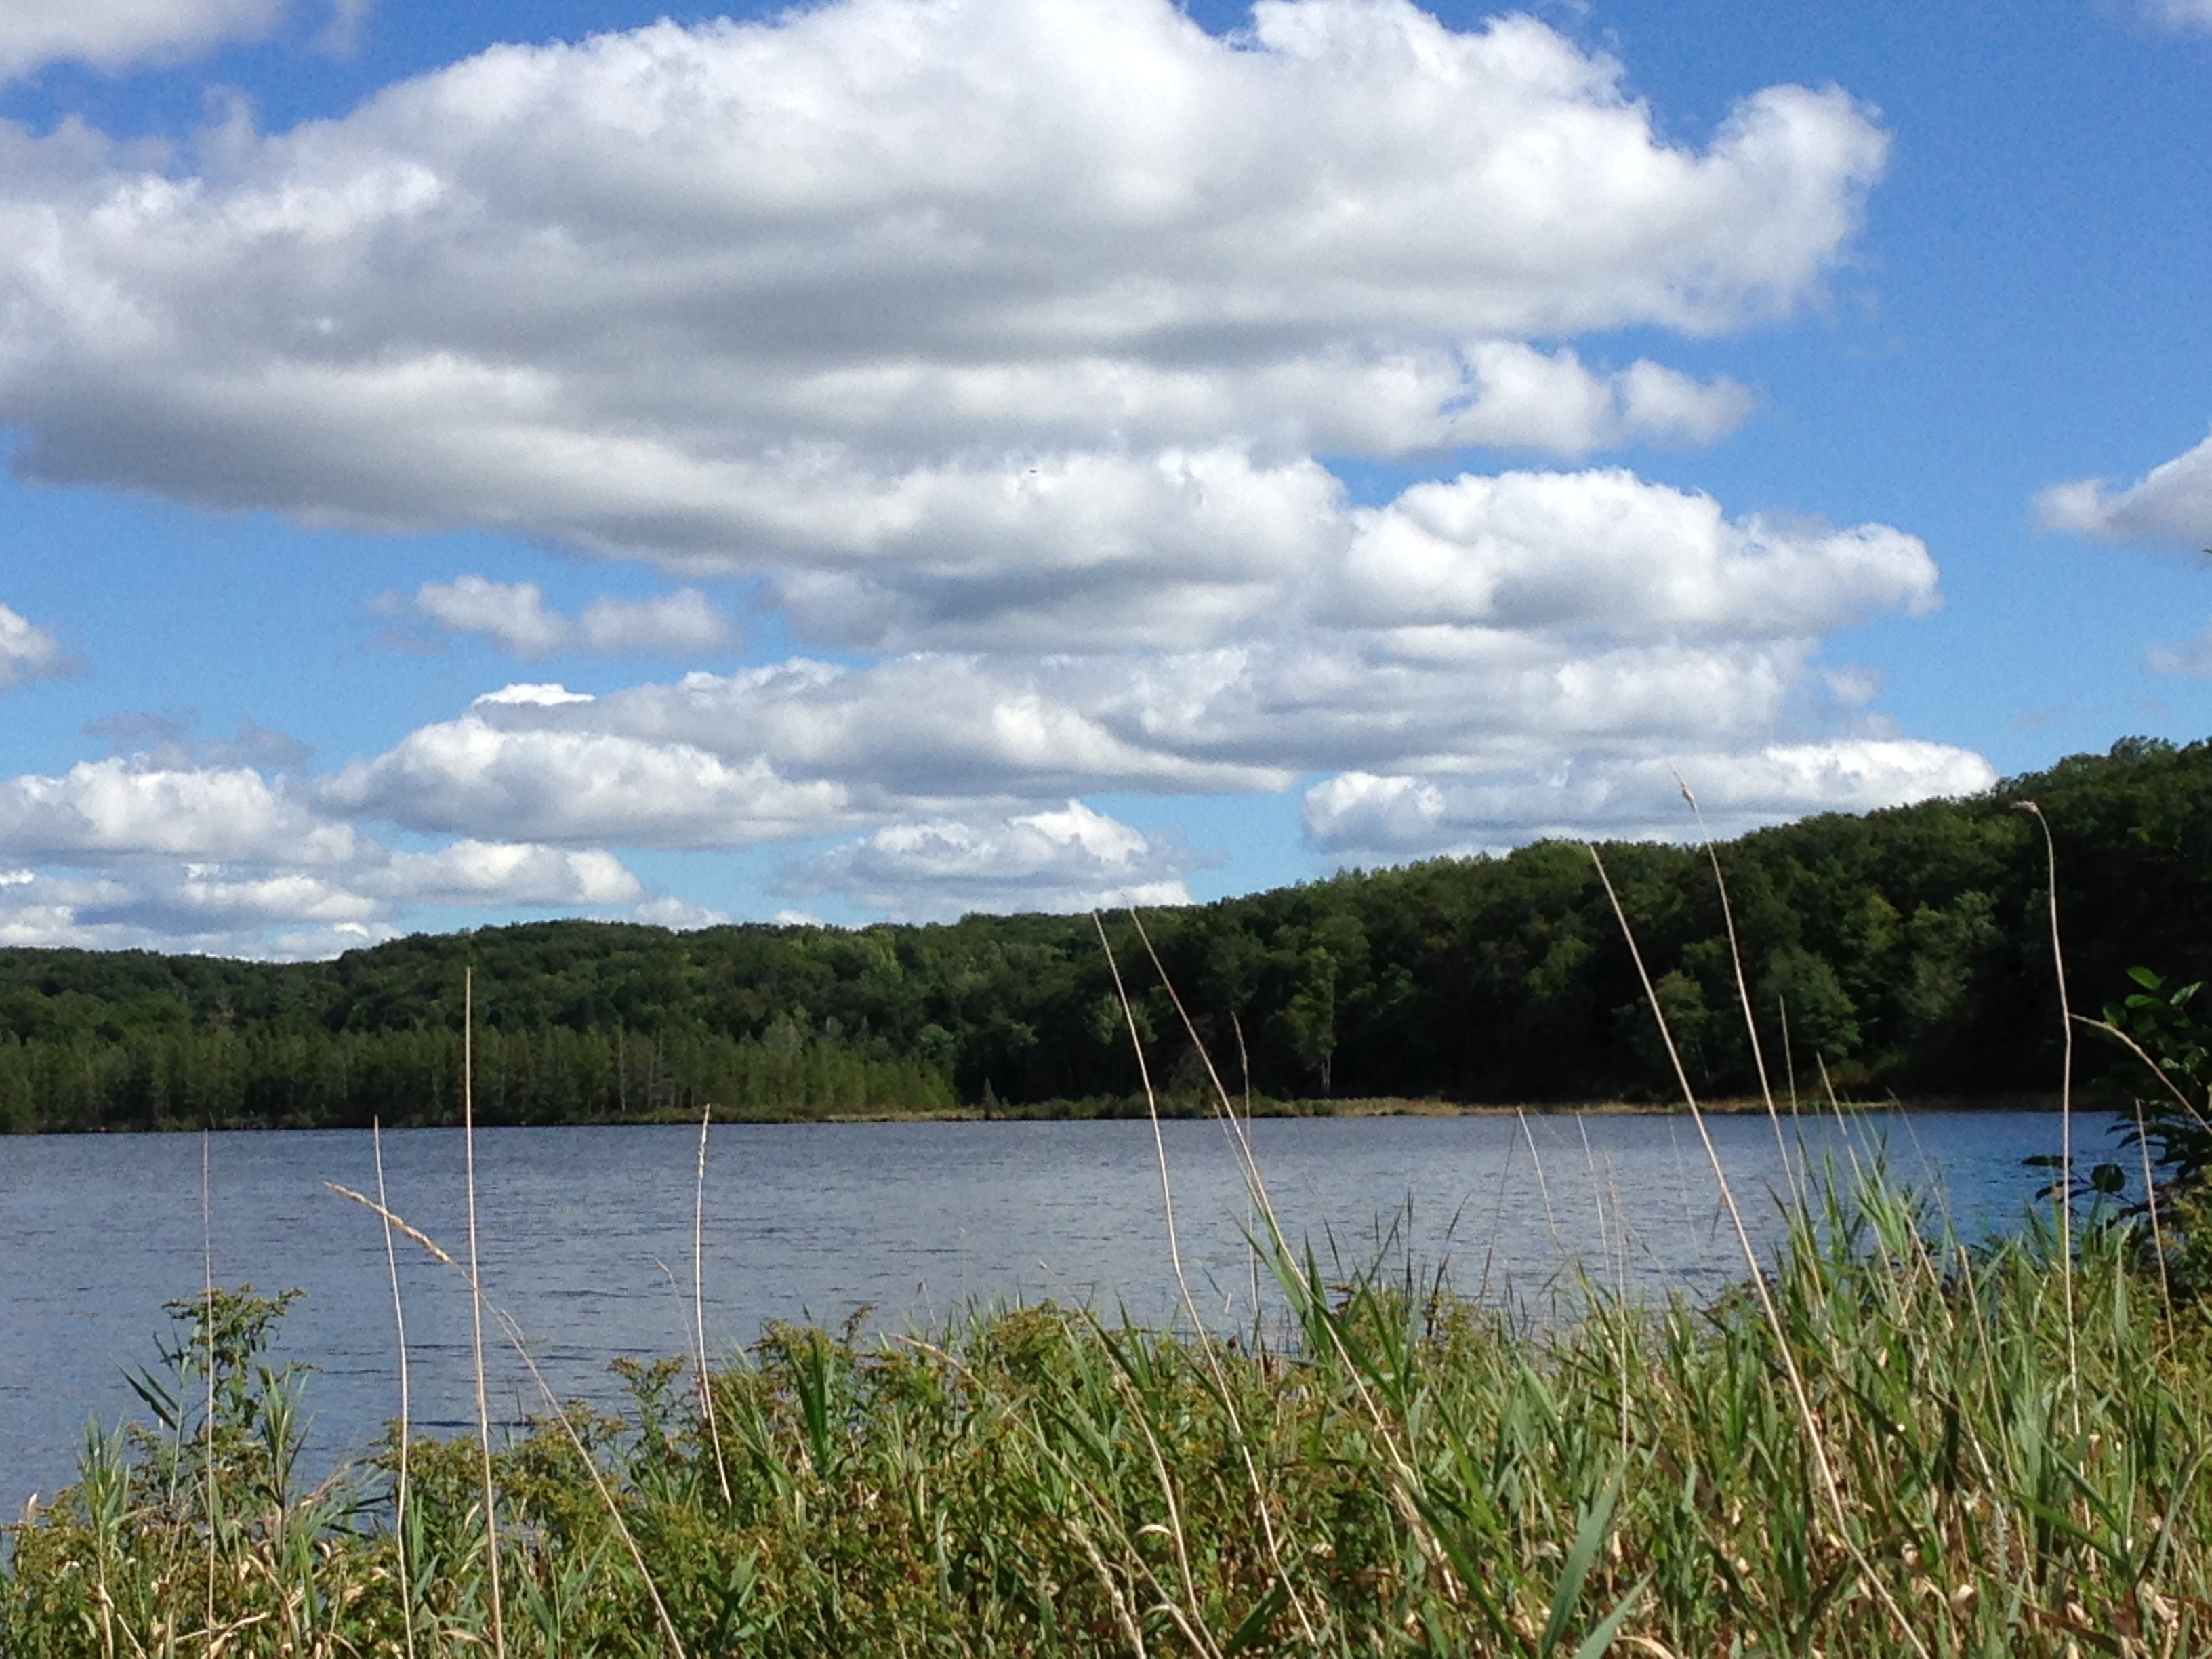 Construction will begin next week on improvements to Staight Lake State Park, Wisconsin's newest state park.